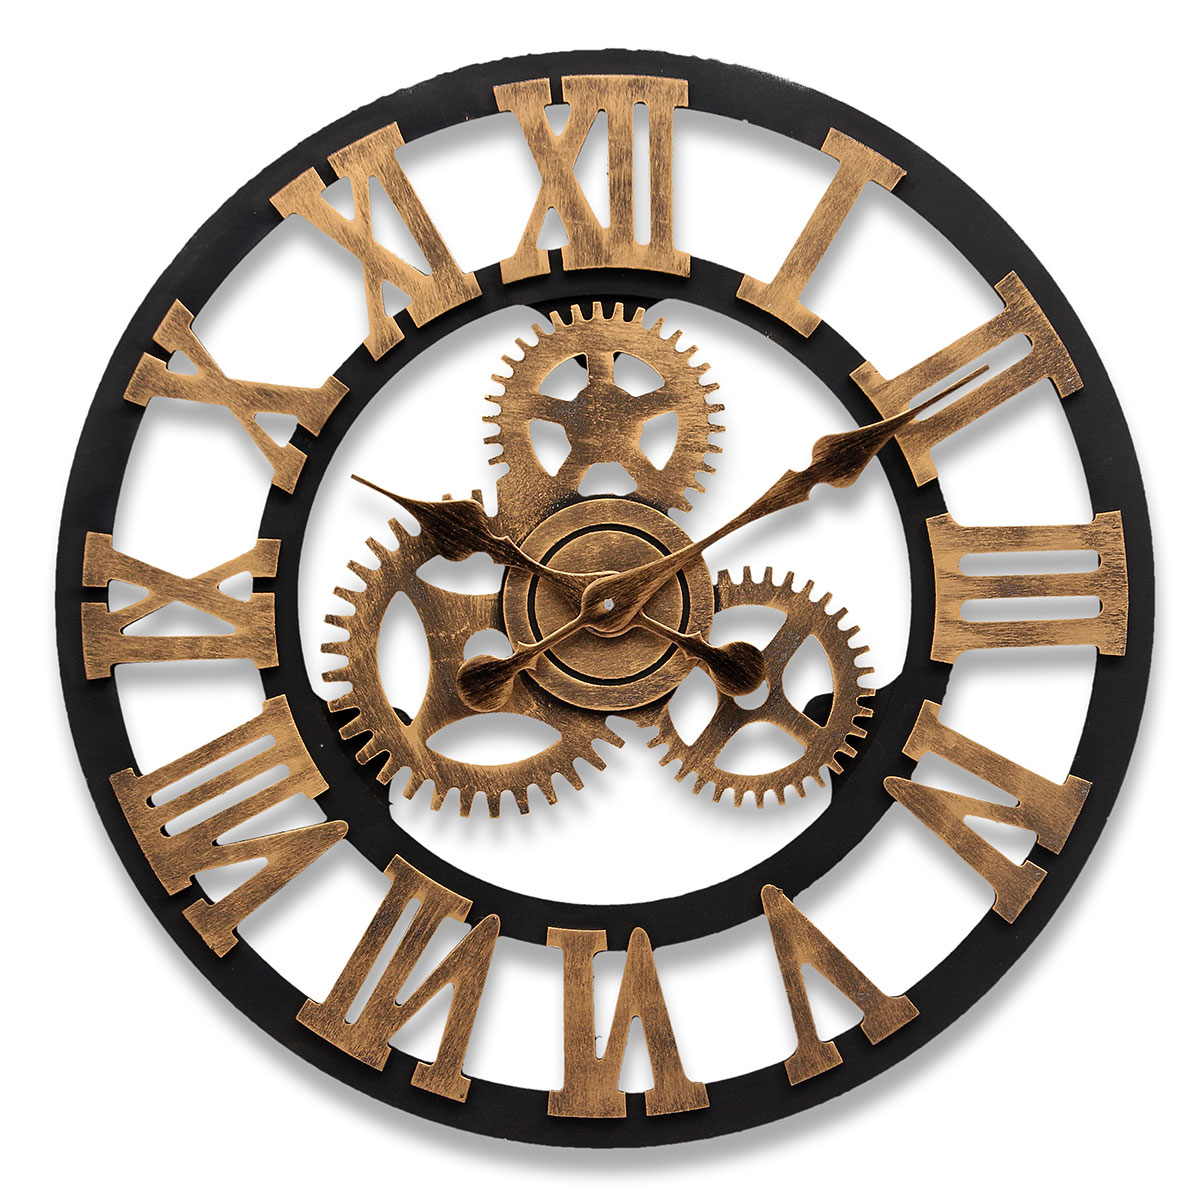 45cm 3d horloge murale quartz antique gear bois luxury. Black Bedroom Furniture Sets. Home Design Ideas